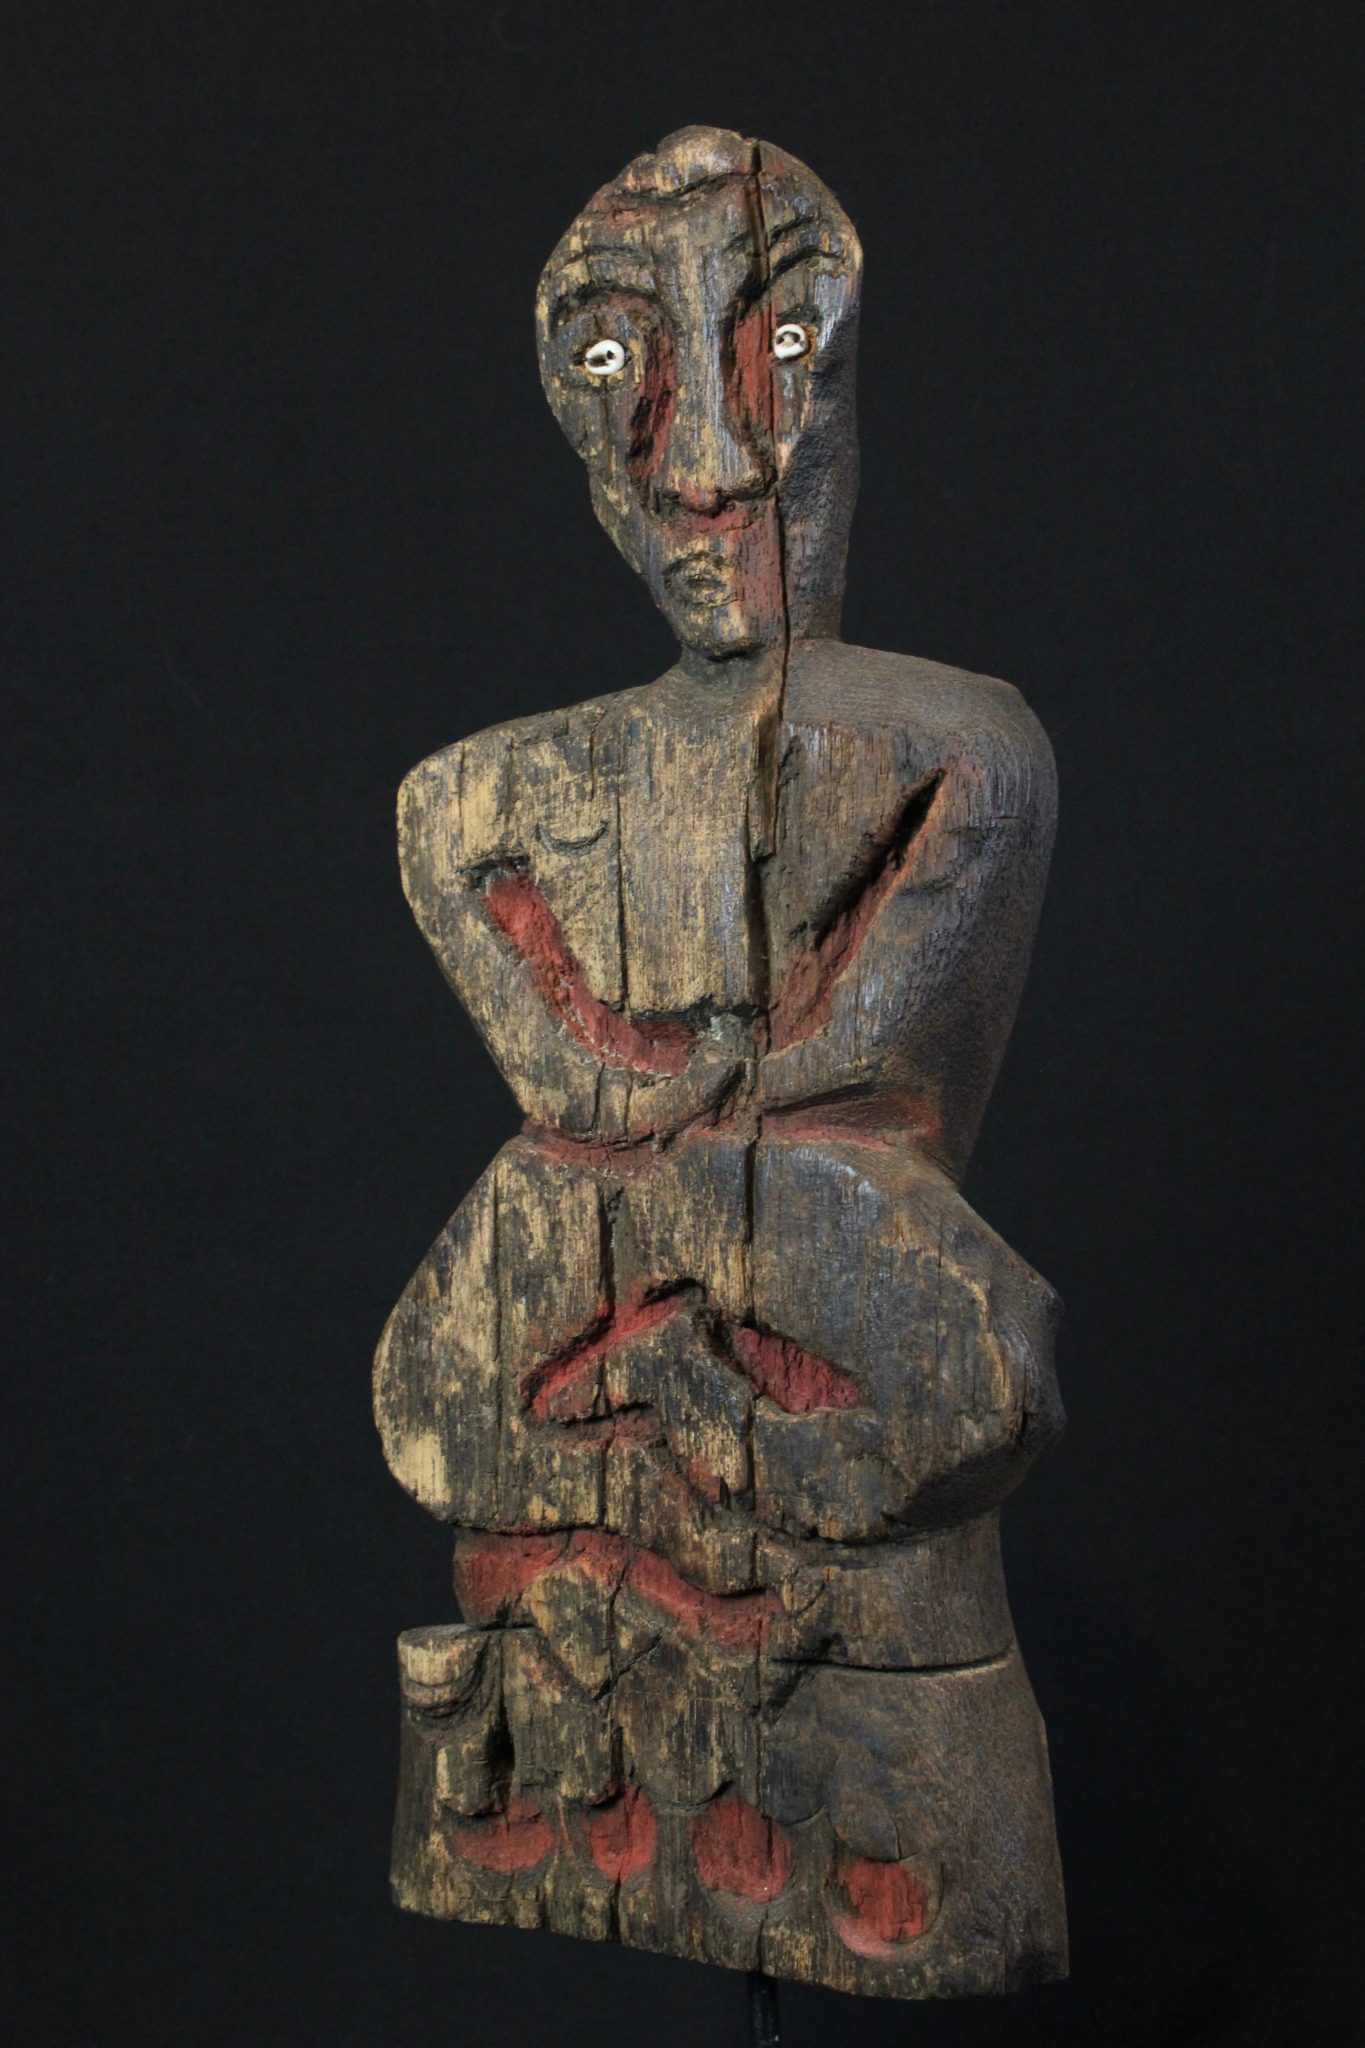 "Shaman Effigy Figure, Nagaland, India, Naga tribe, Early 20th c, Wood, pigment, shell, Probably for calling spirits as well as for use in healing rituals There are 7 images on the back of creatures made by poking holes as an outline for each one. 14"" x 5 ¾"" x 2 ¾"", Sold"